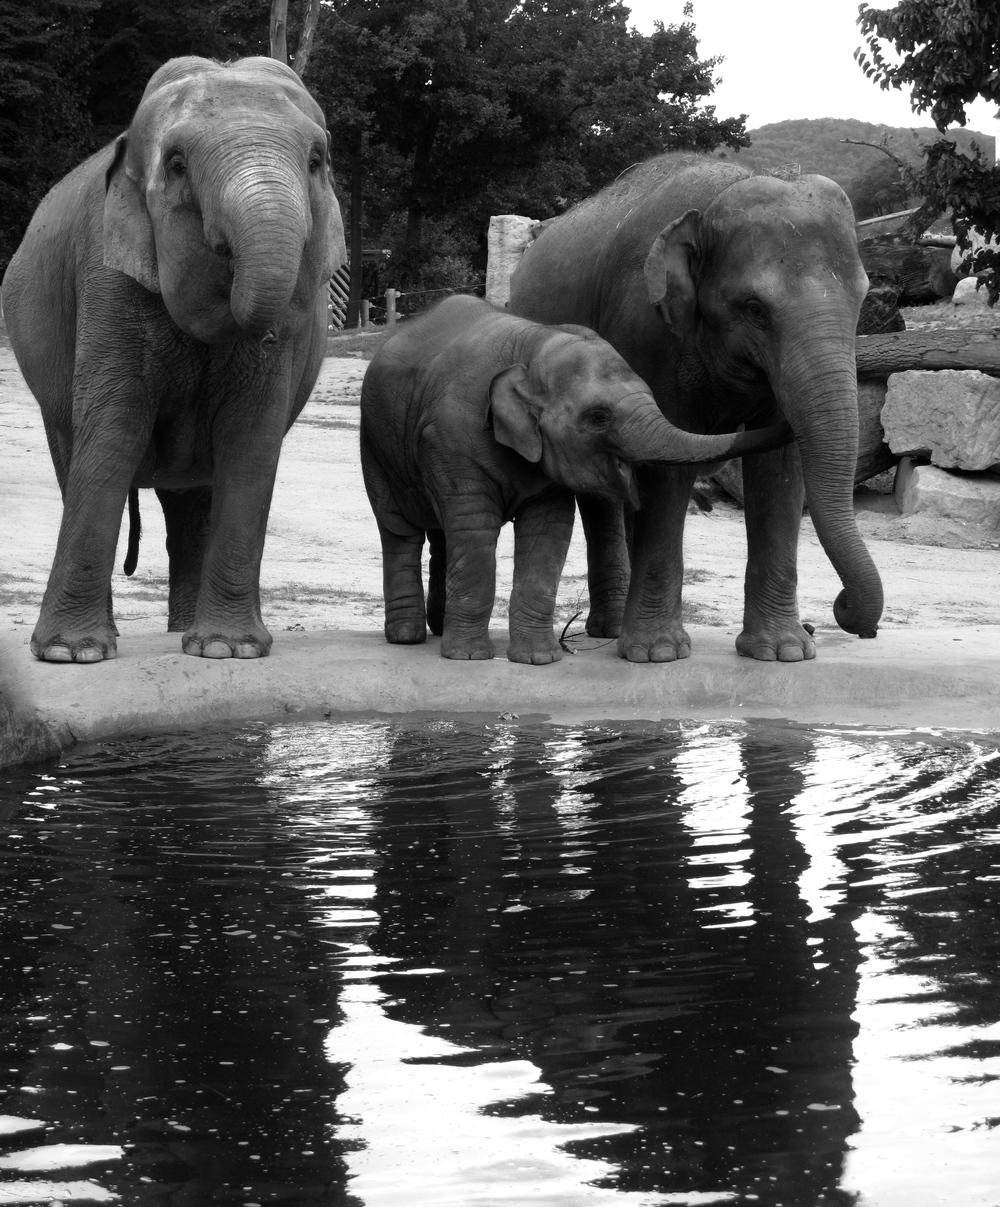 Elephants and baby elephant drinking water at Prague zoo.